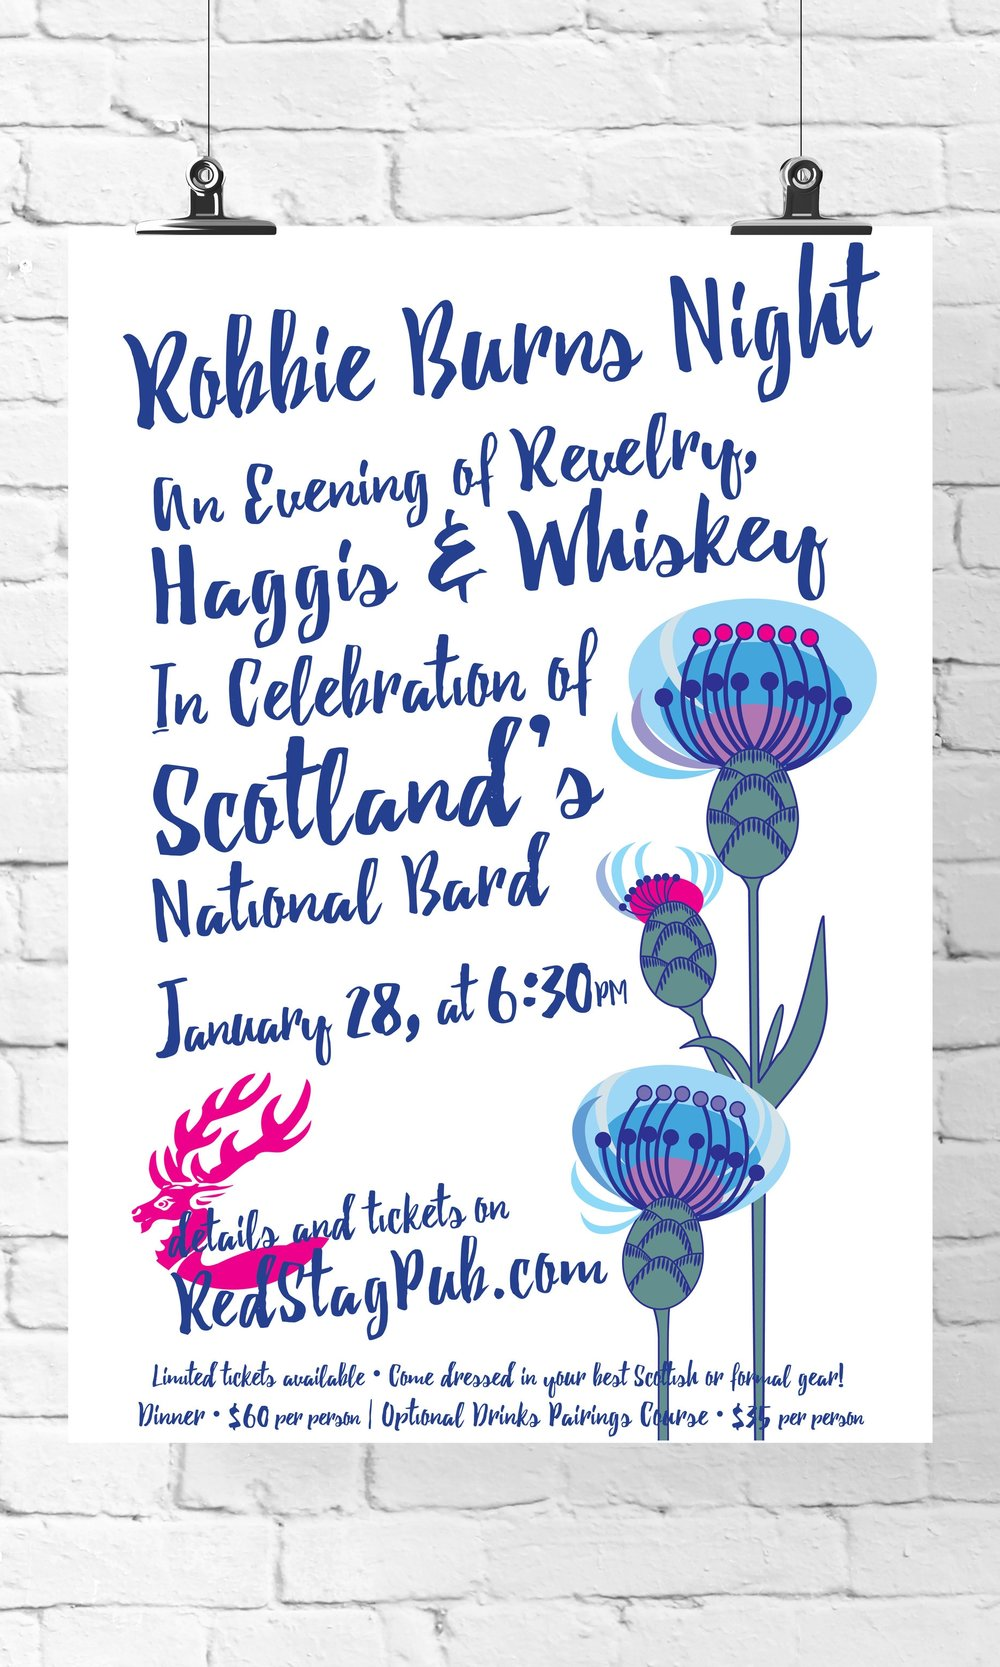 ROBBIE BURNS • 11X17 PROMOTIONAL POSTER FOR 2017  CLIENT: McCARTHY'S RED STAG PUB AND WHISKEY BAR WORK: Adobe Illustrator + InDesign